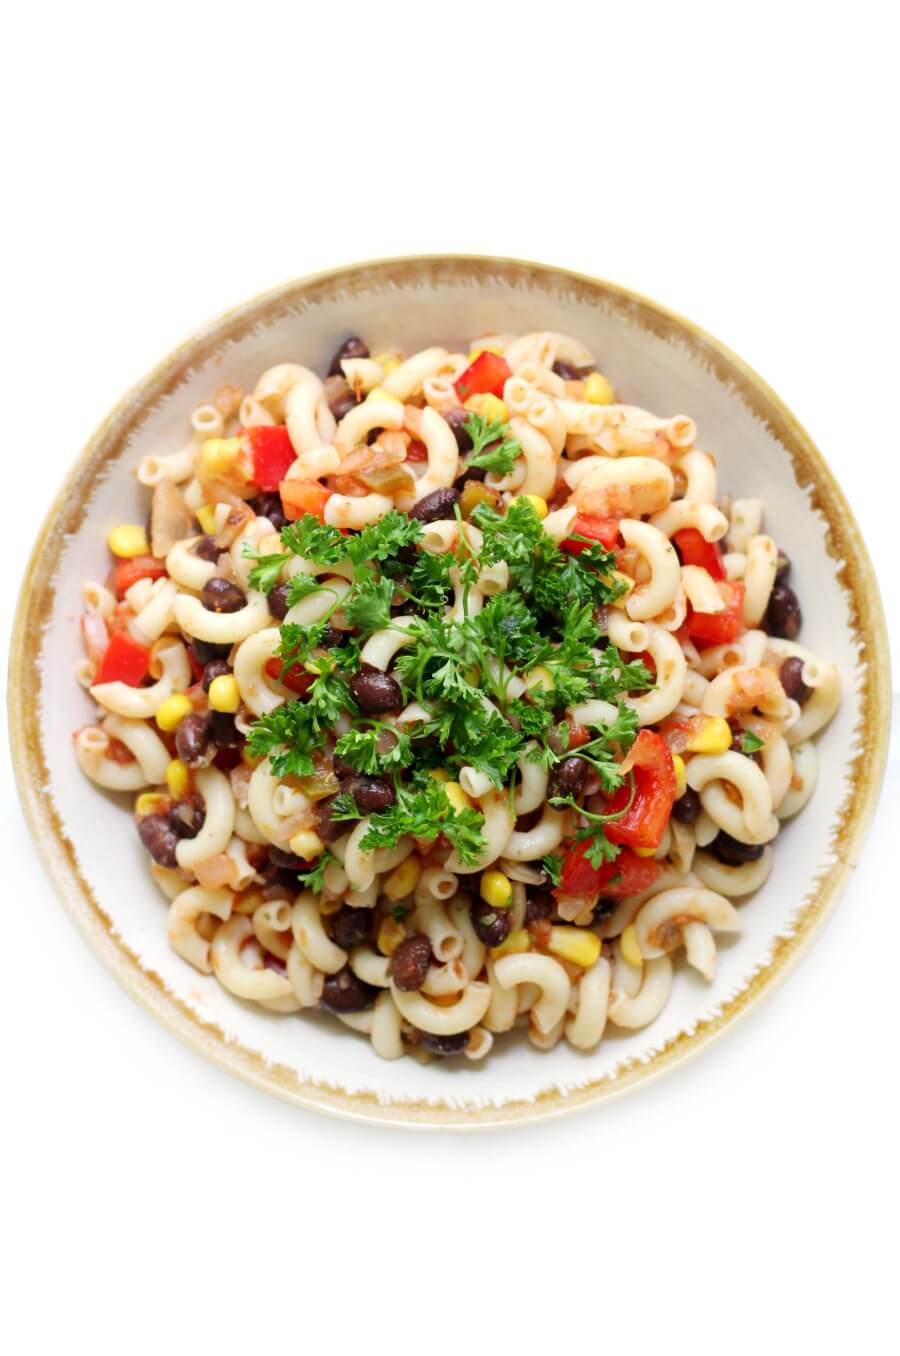 Gluten Free Mexican Pasta Salad in Bowl